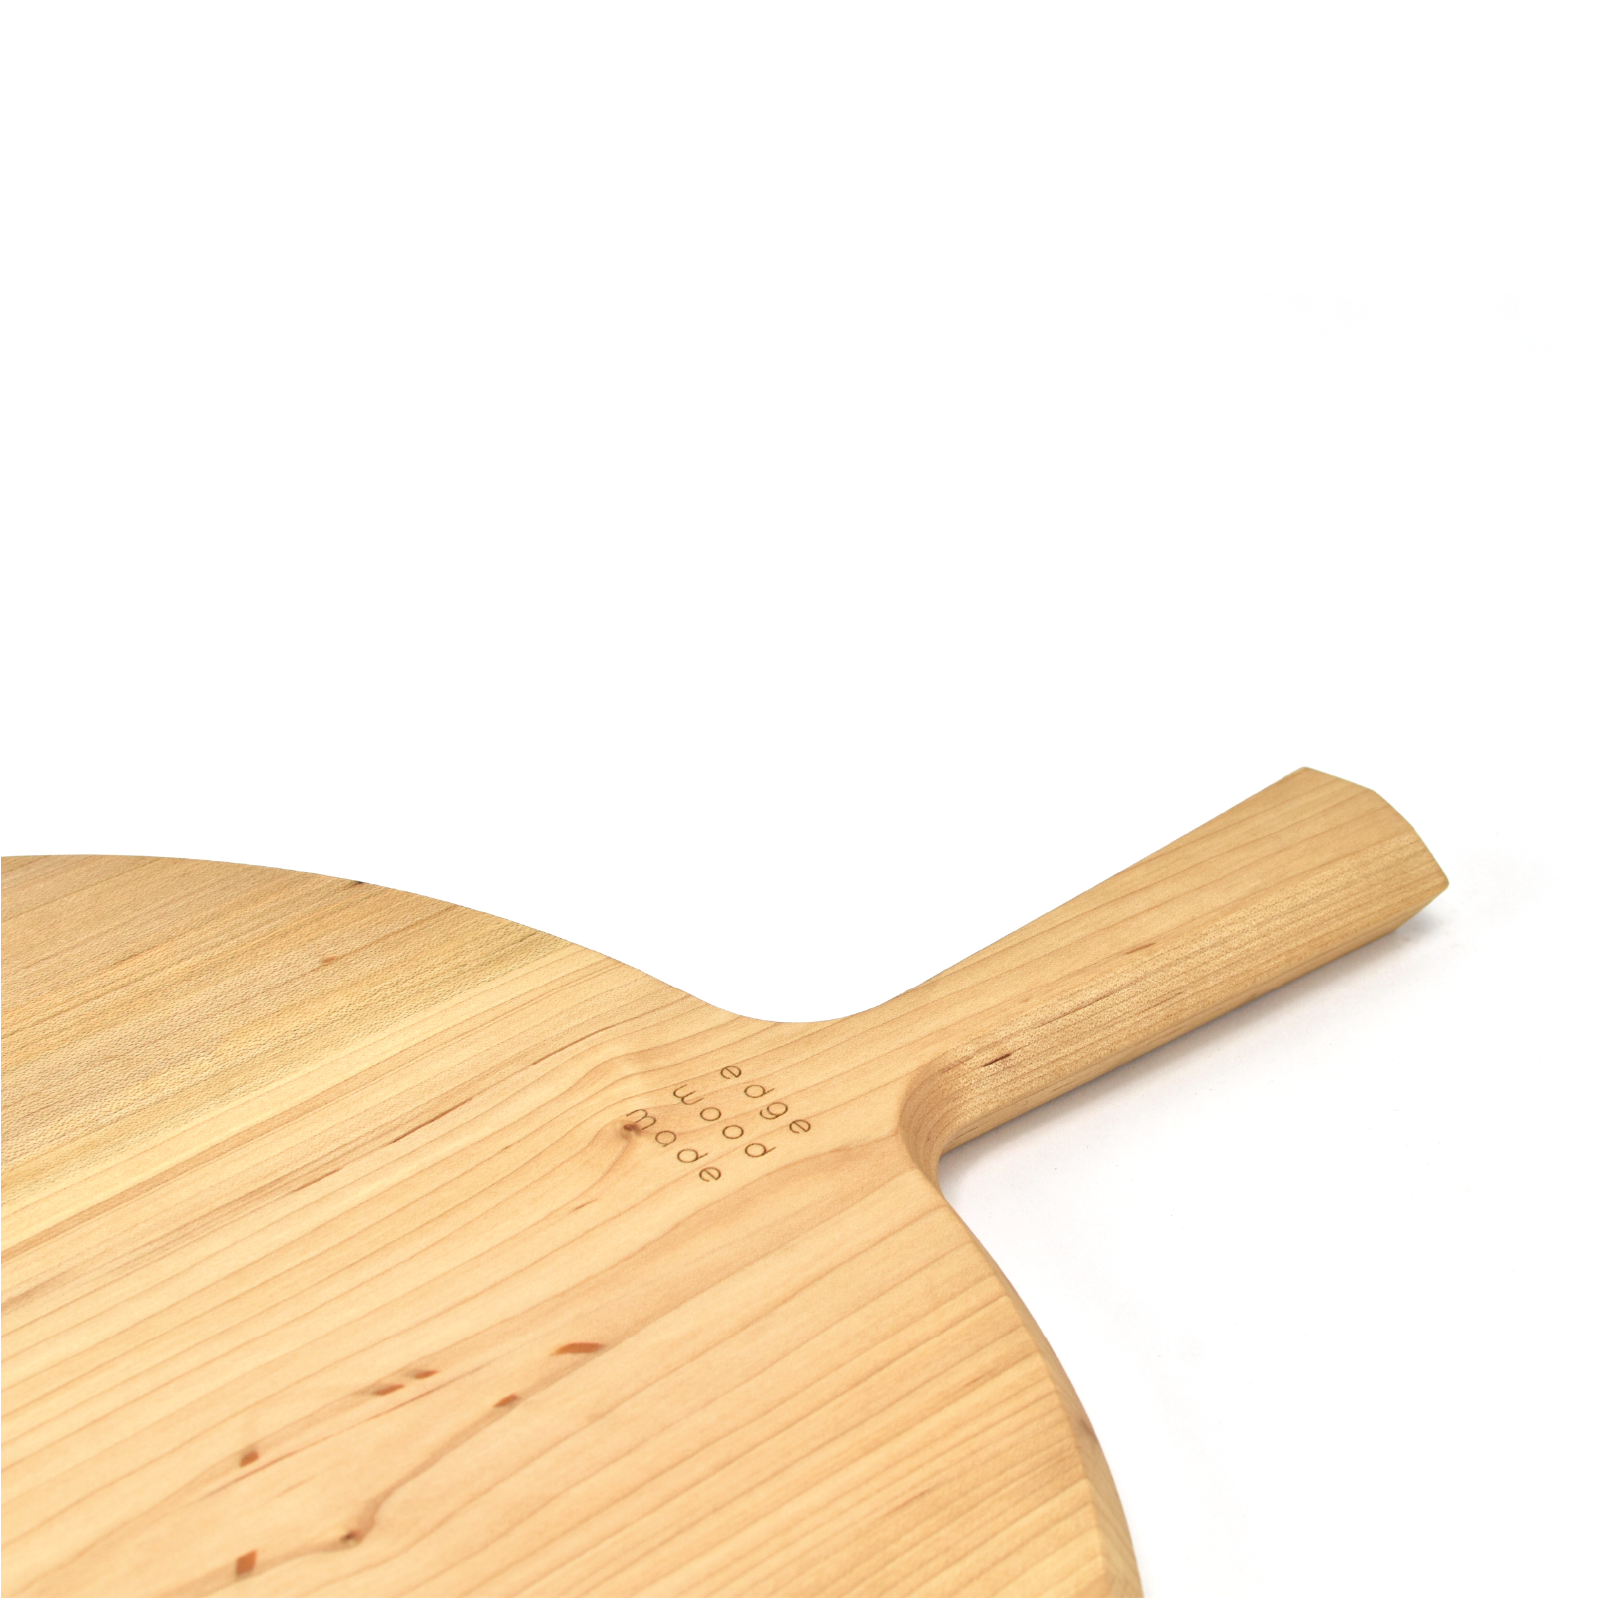 Edgewood Round Wood Board